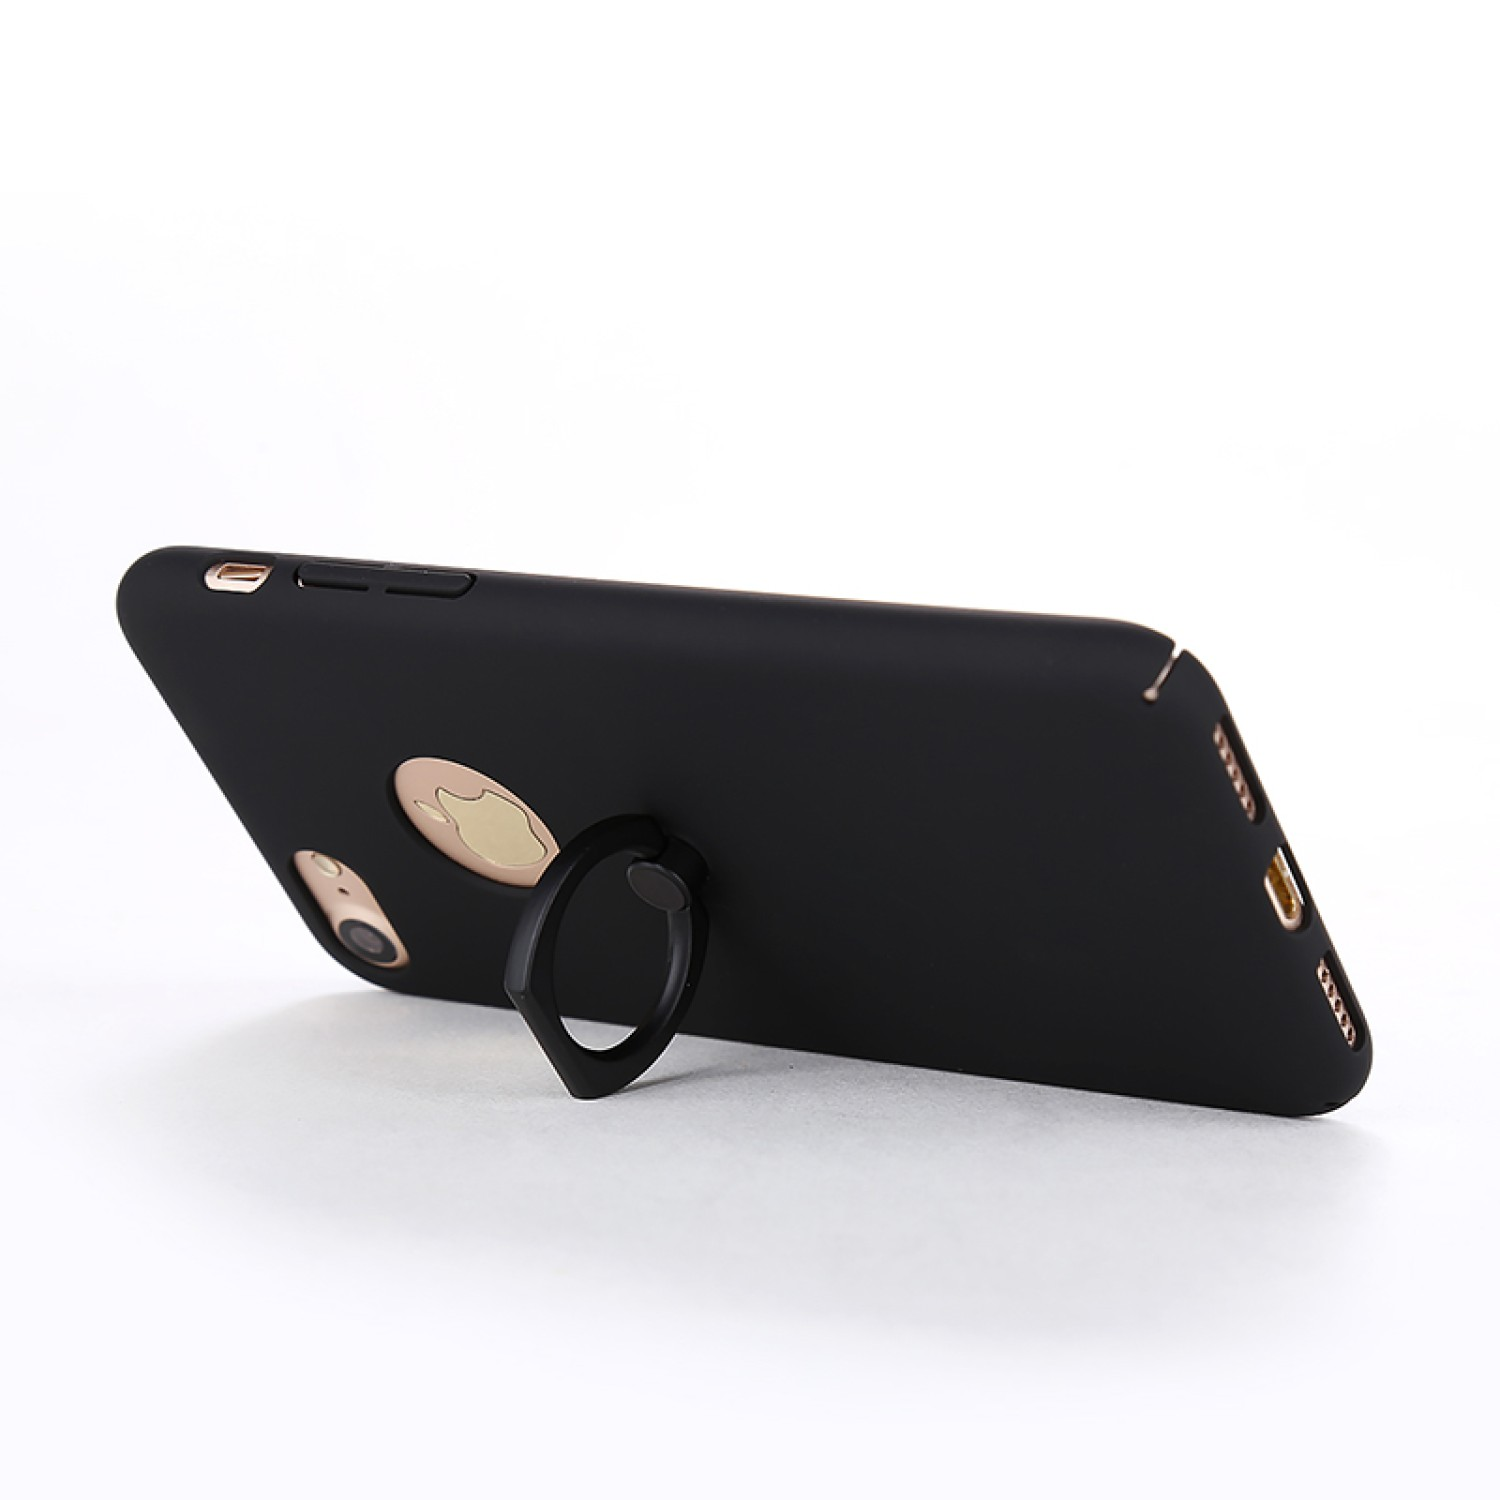 promo code 43392 0a354 Rubberized Finger Ring Hard PC Case for iPhone 7 -Gold - Rubberized ...